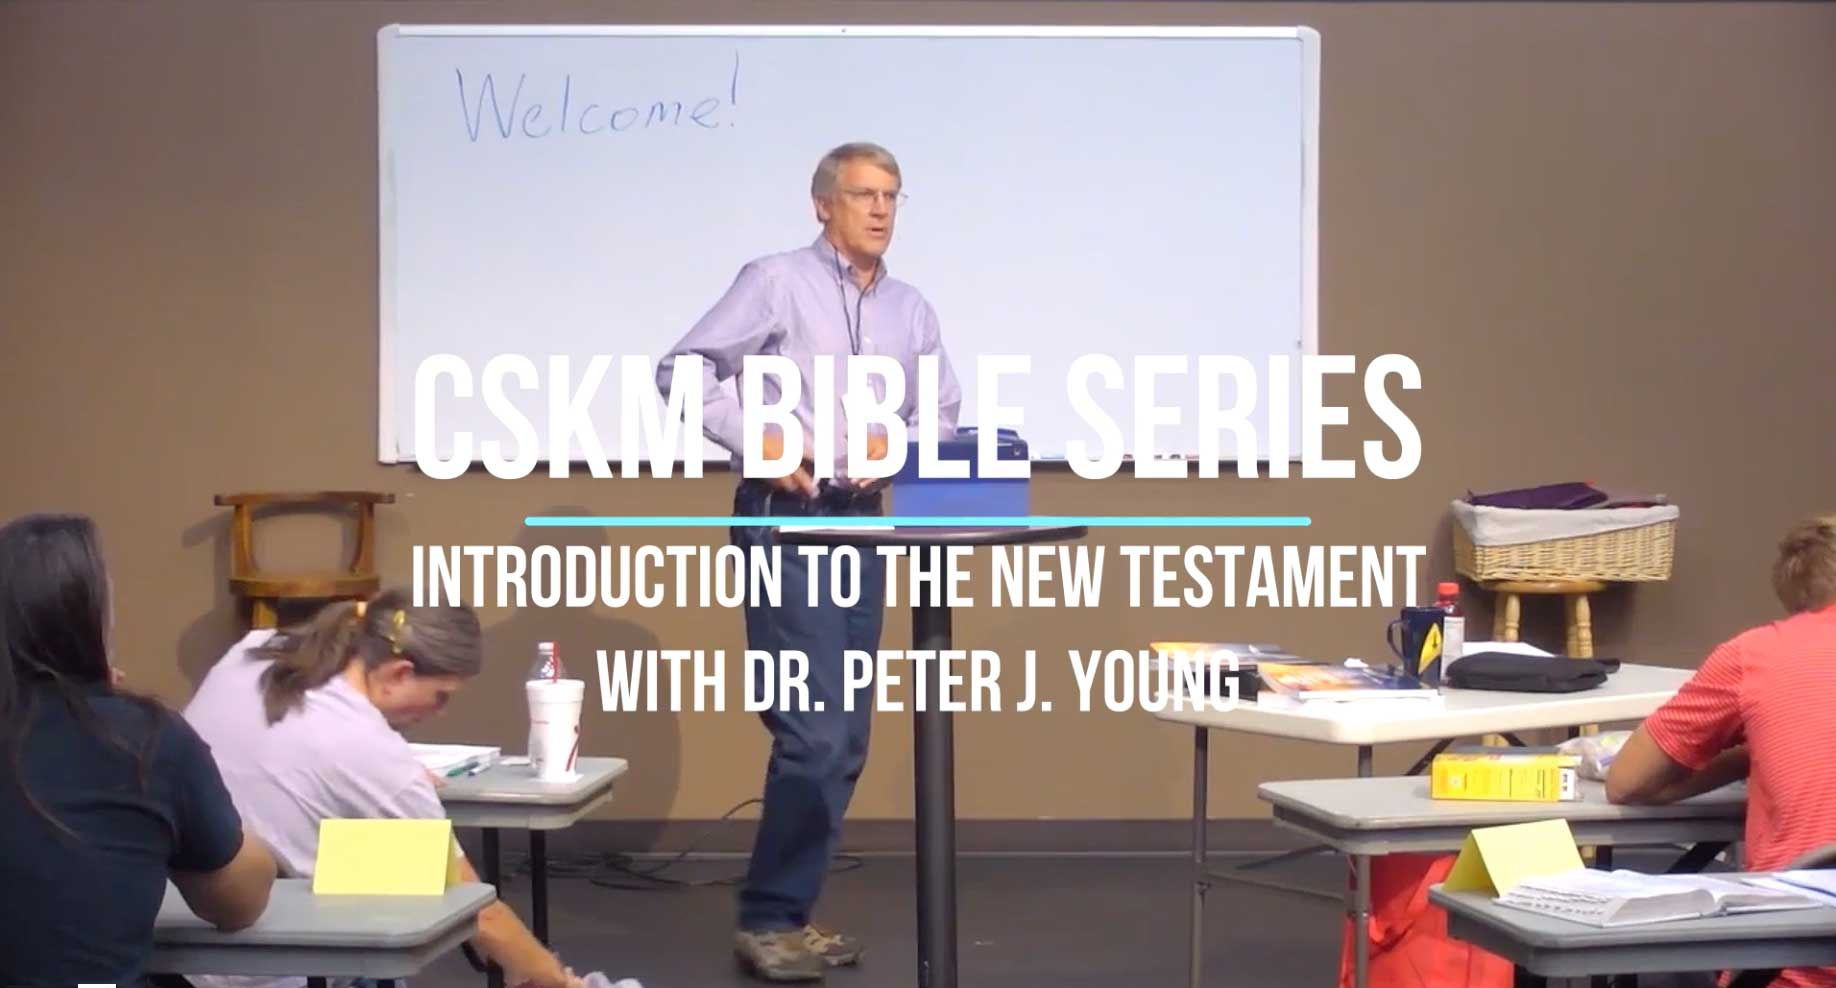 CSKM Bible Series Sample - Introduction to the New Testament with Peter J. Young